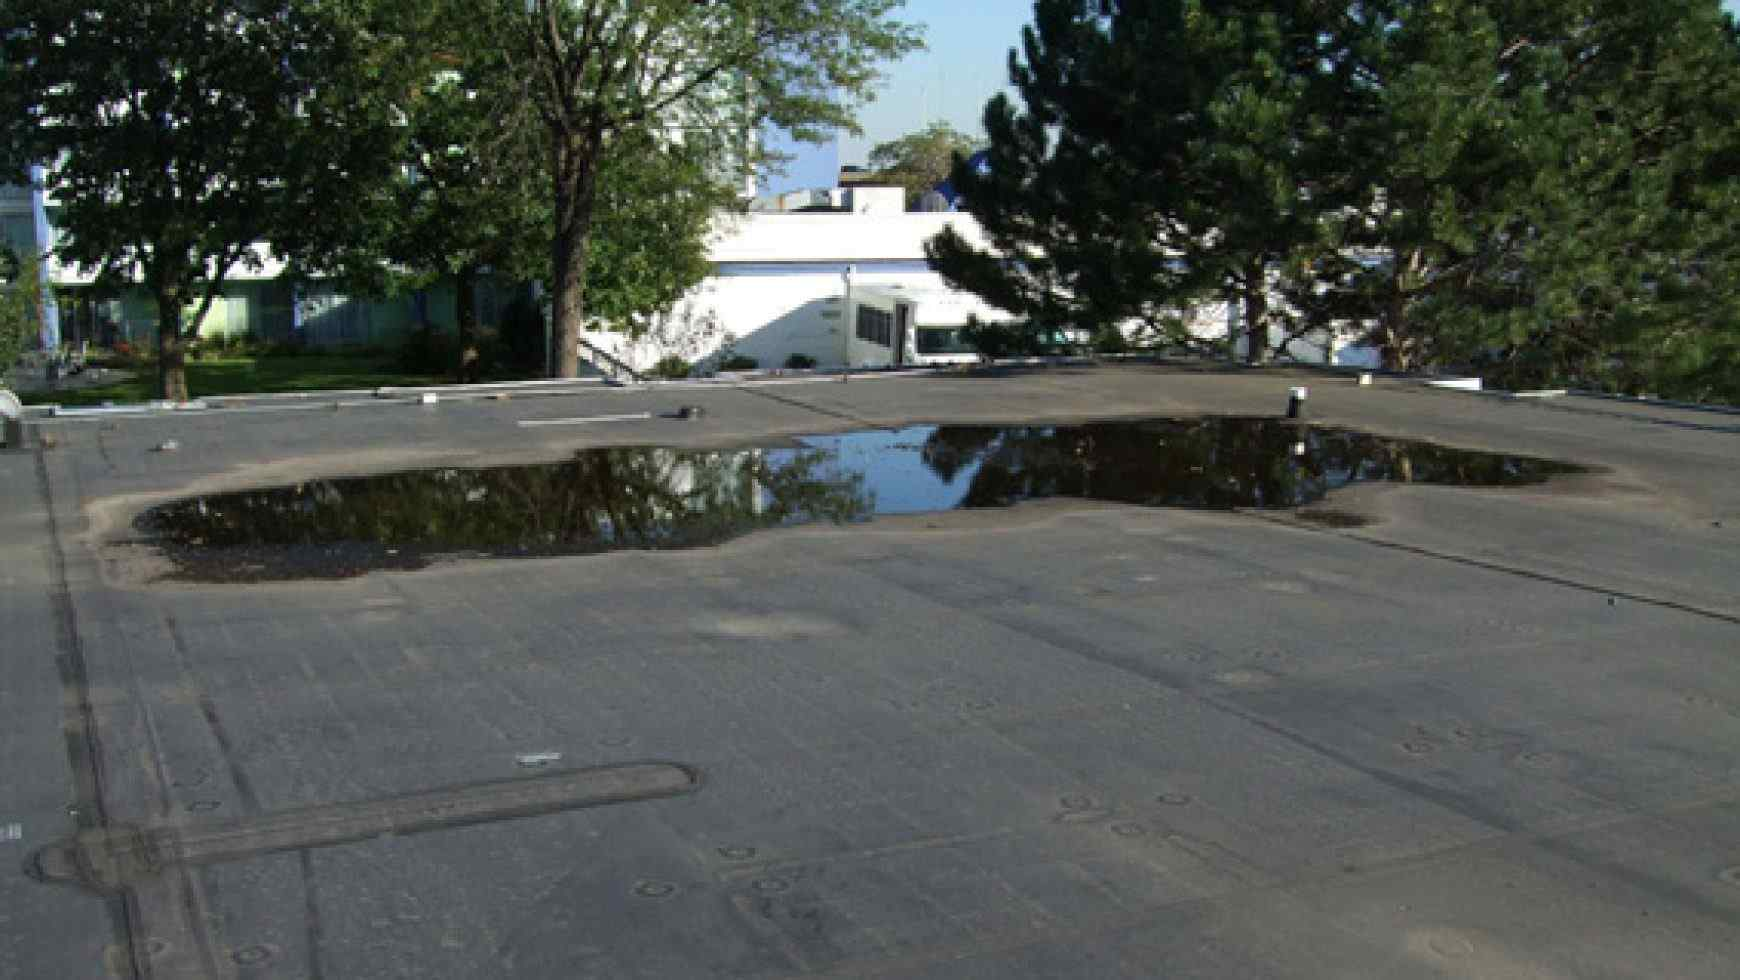 Flat Commercial Roof Membrane Options: Similarities and Differences